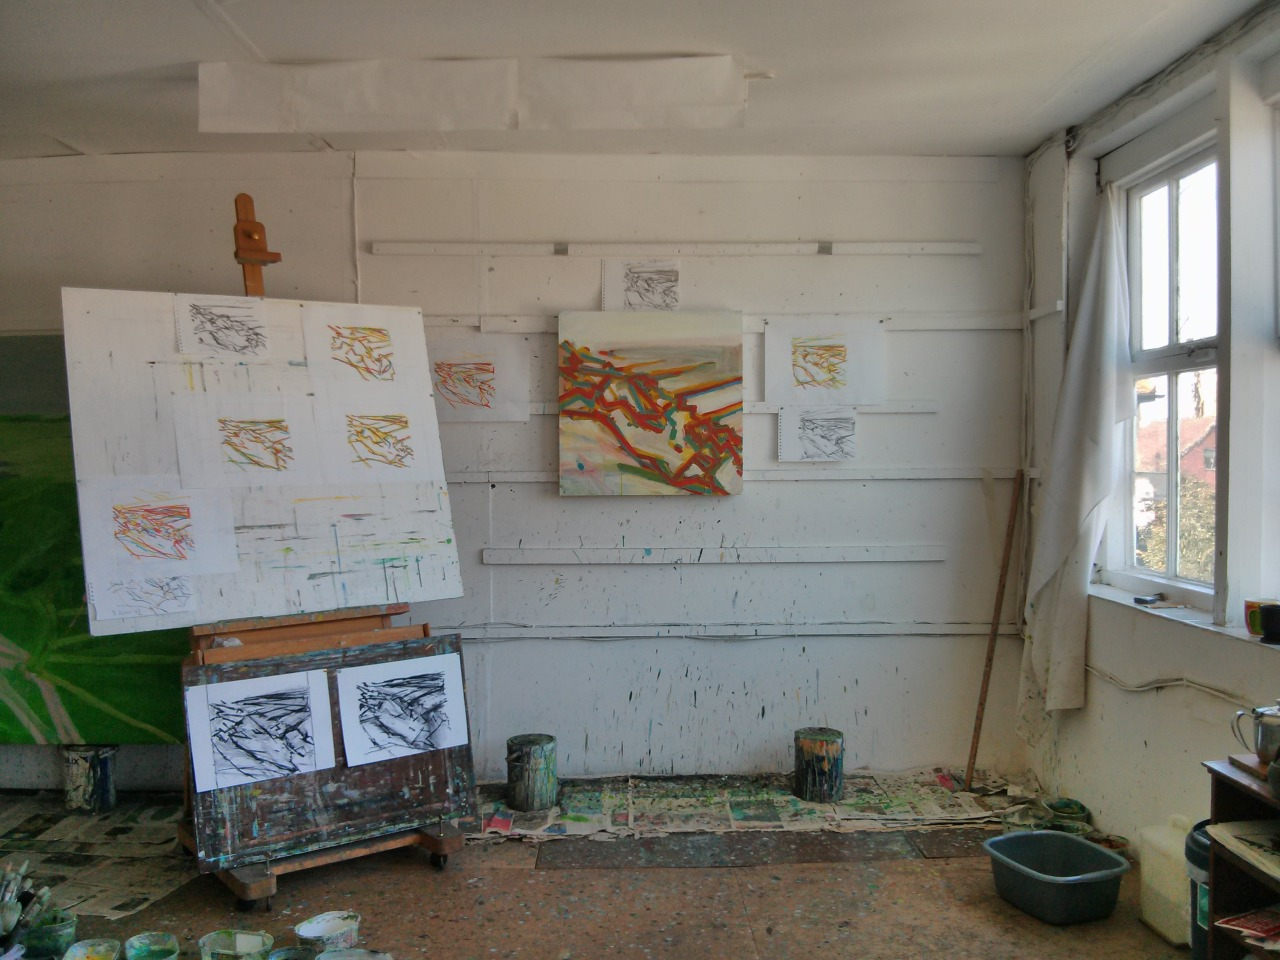 The studio this afternoon. Several oil pastel drawings and charcoal drawings on the wall and the board. After this photograph was taken I added alot of grey to the painting, didn't like it so scraped it all off, repainted the canvas white and painted the network of lines in first yellow, then blue and then red. It now looks more bleached then this.